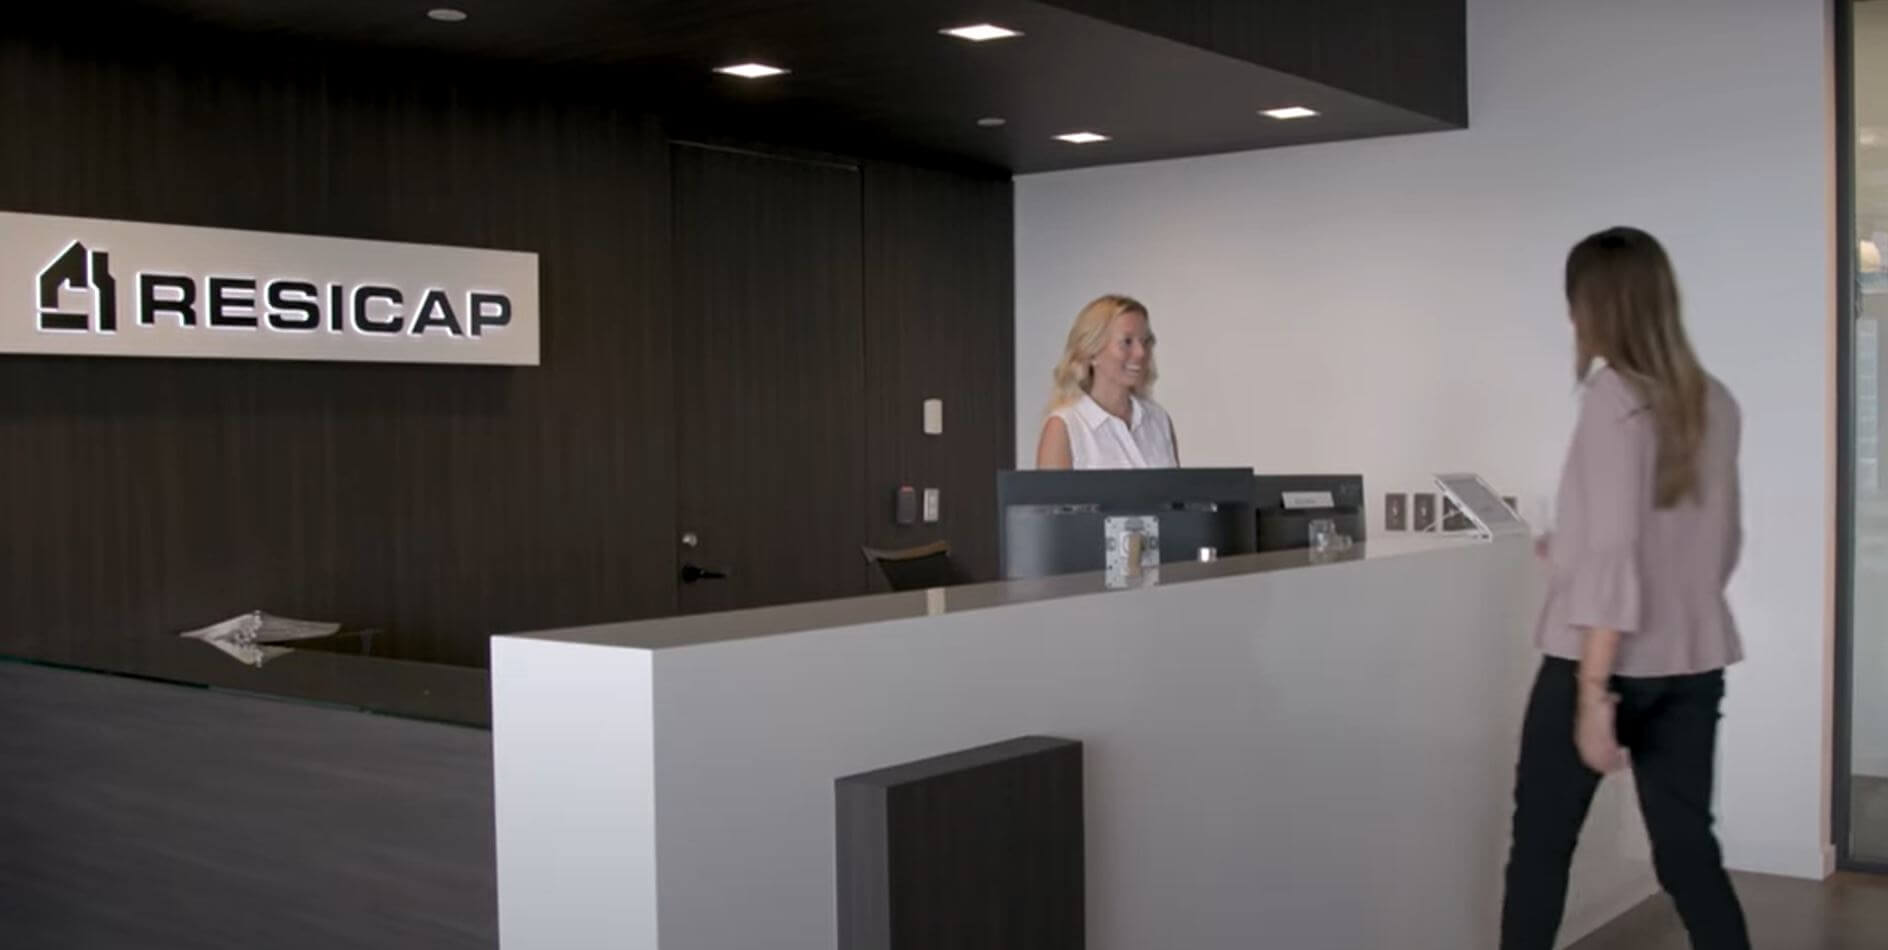 RESICAP Front desk receptionist greeting someone